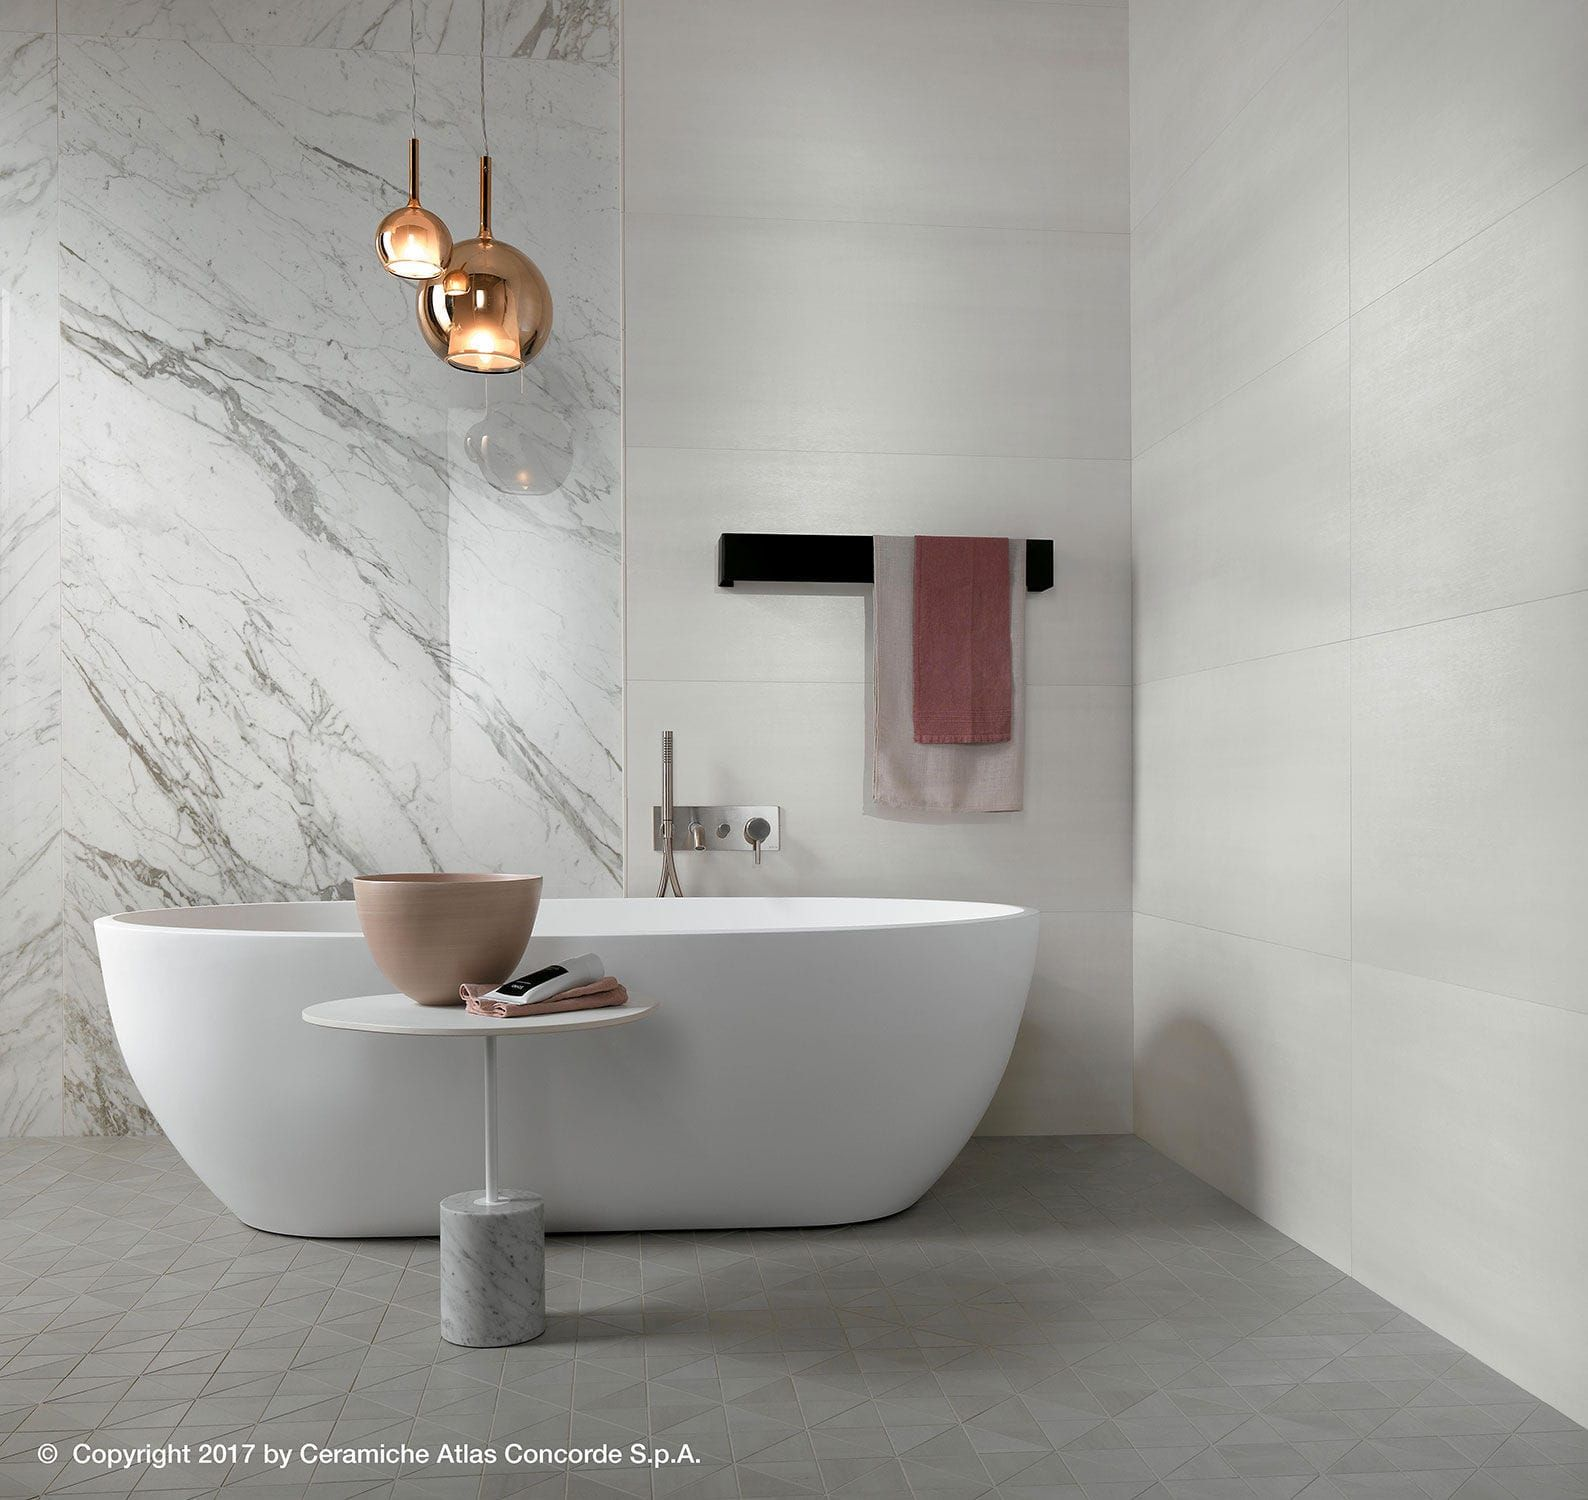 Wall Tile Ceramic Matte Concrete Look Mek Wall Atlas